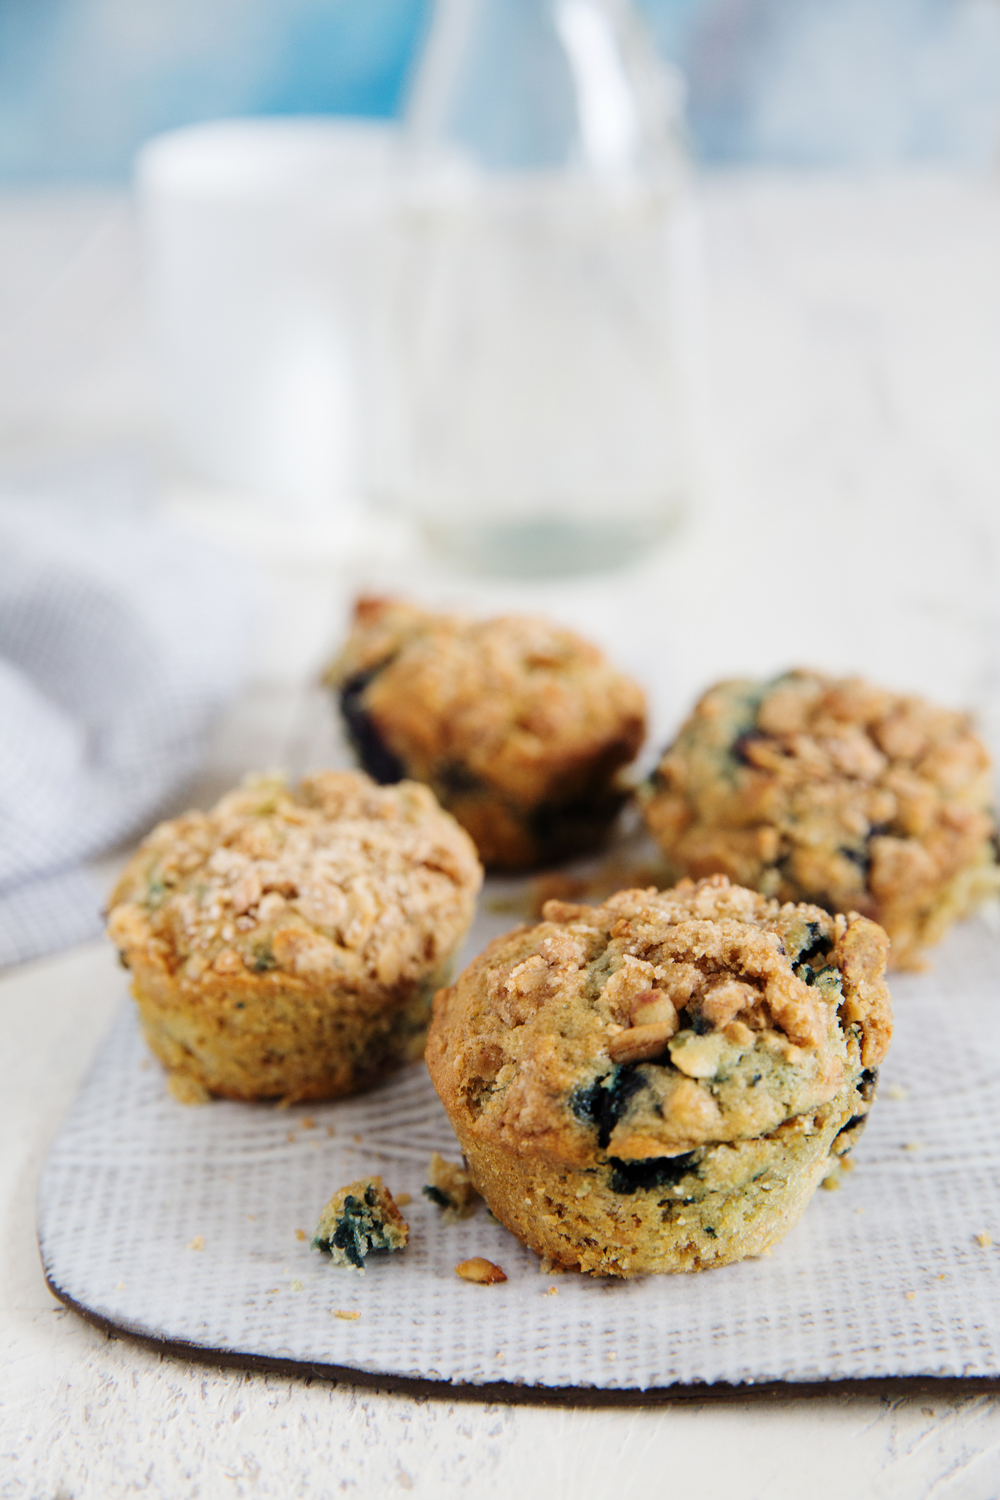 Blueberry Muffins with Granola is one of the recipes that is perfect for Summer.